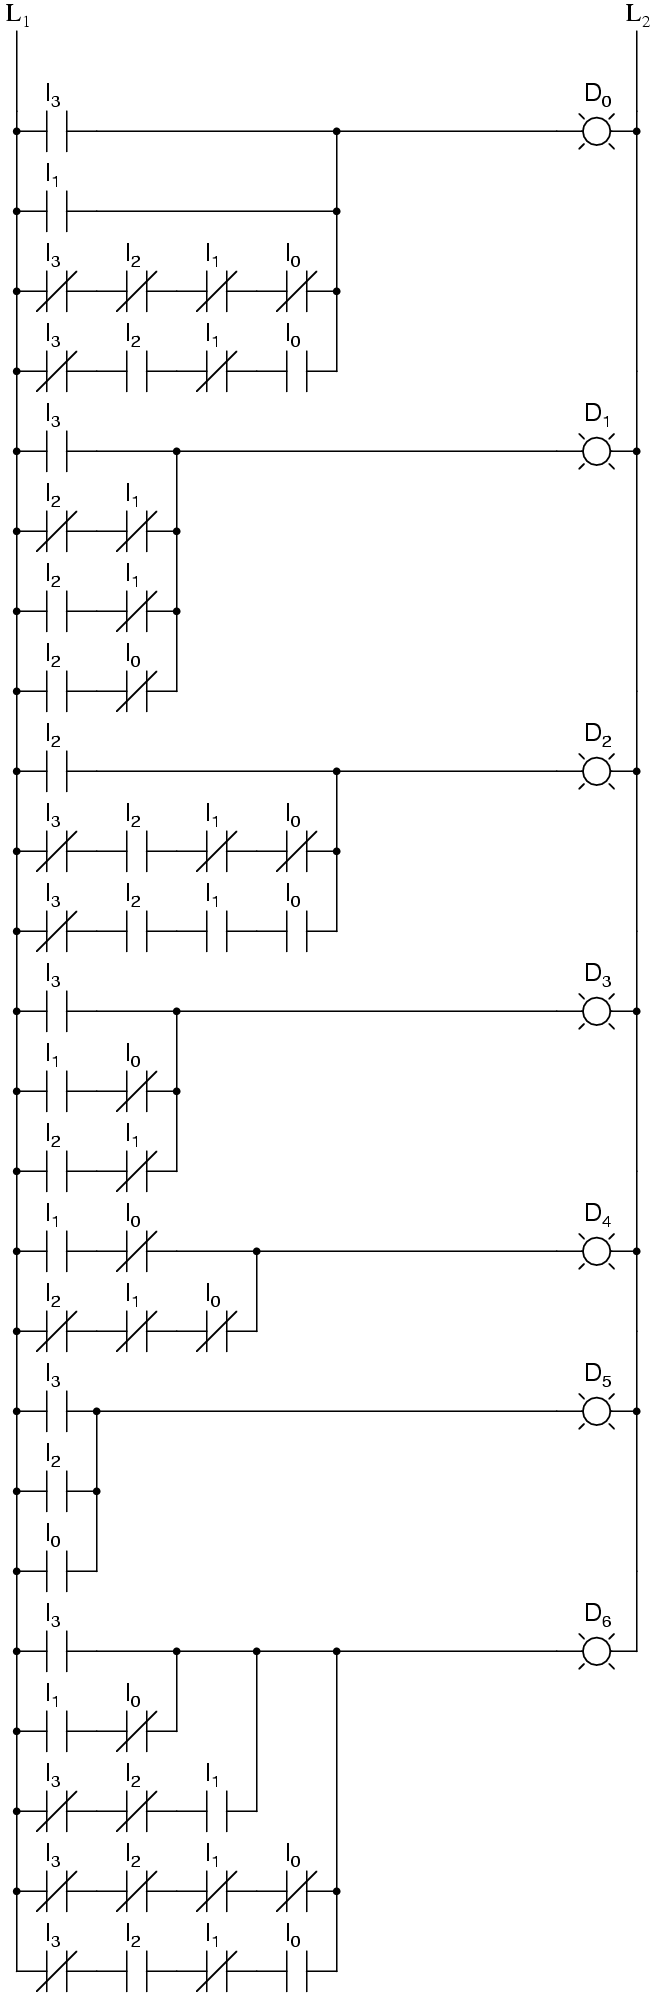 Lessons In Electric Circuits Volume Iv Digital Chapter 9 Logic Diagram 2x4 Decoder Demultiplexers